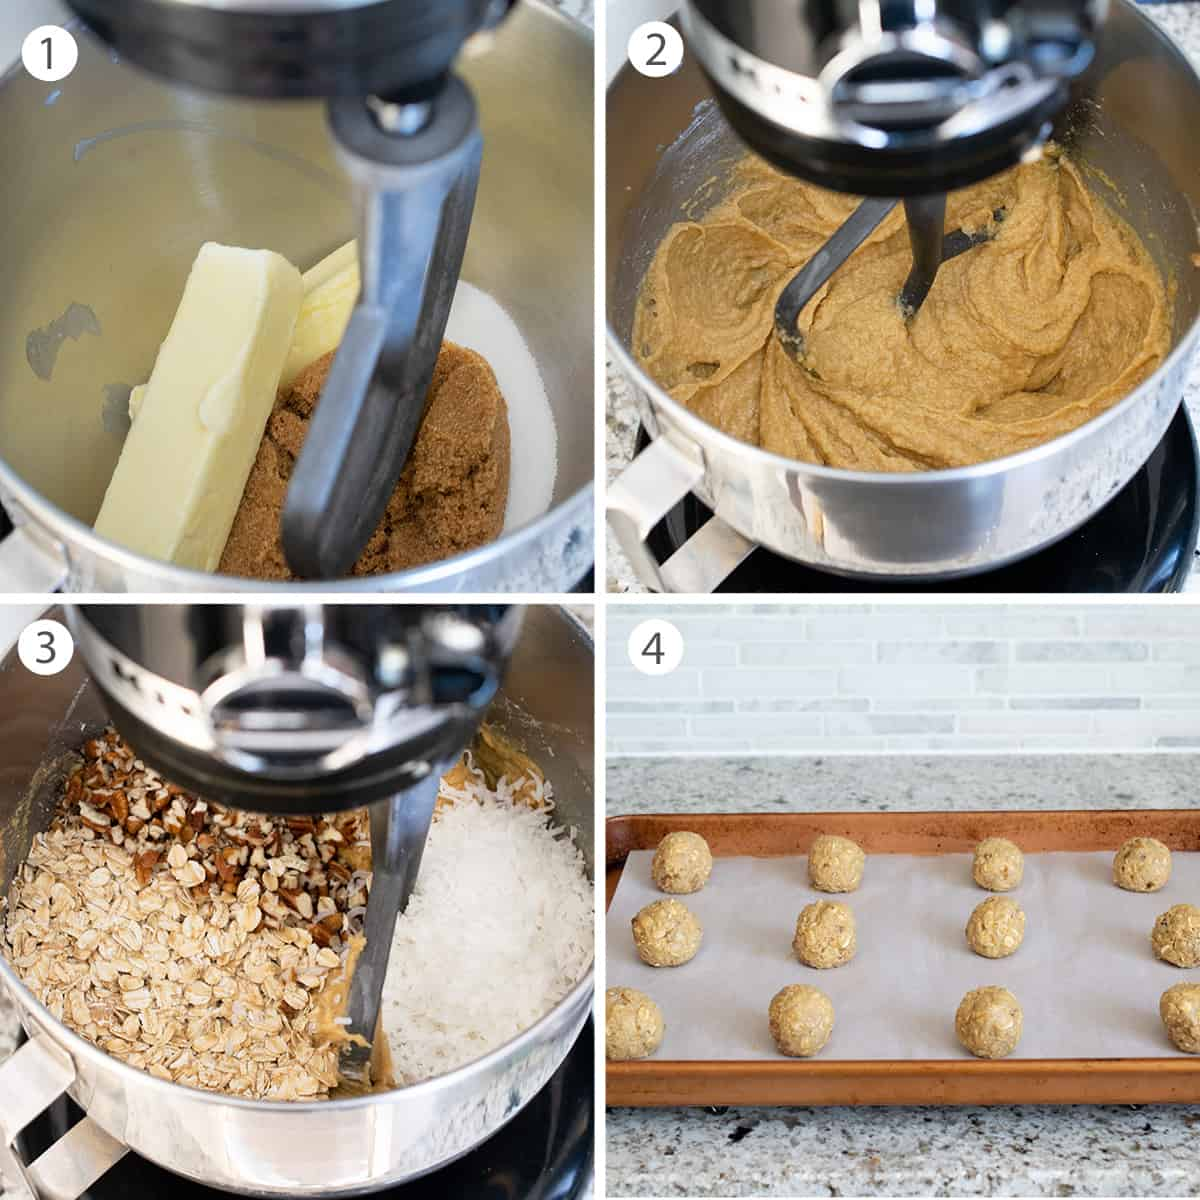 Baking steps for making cookies including how to shape the cookie balls.